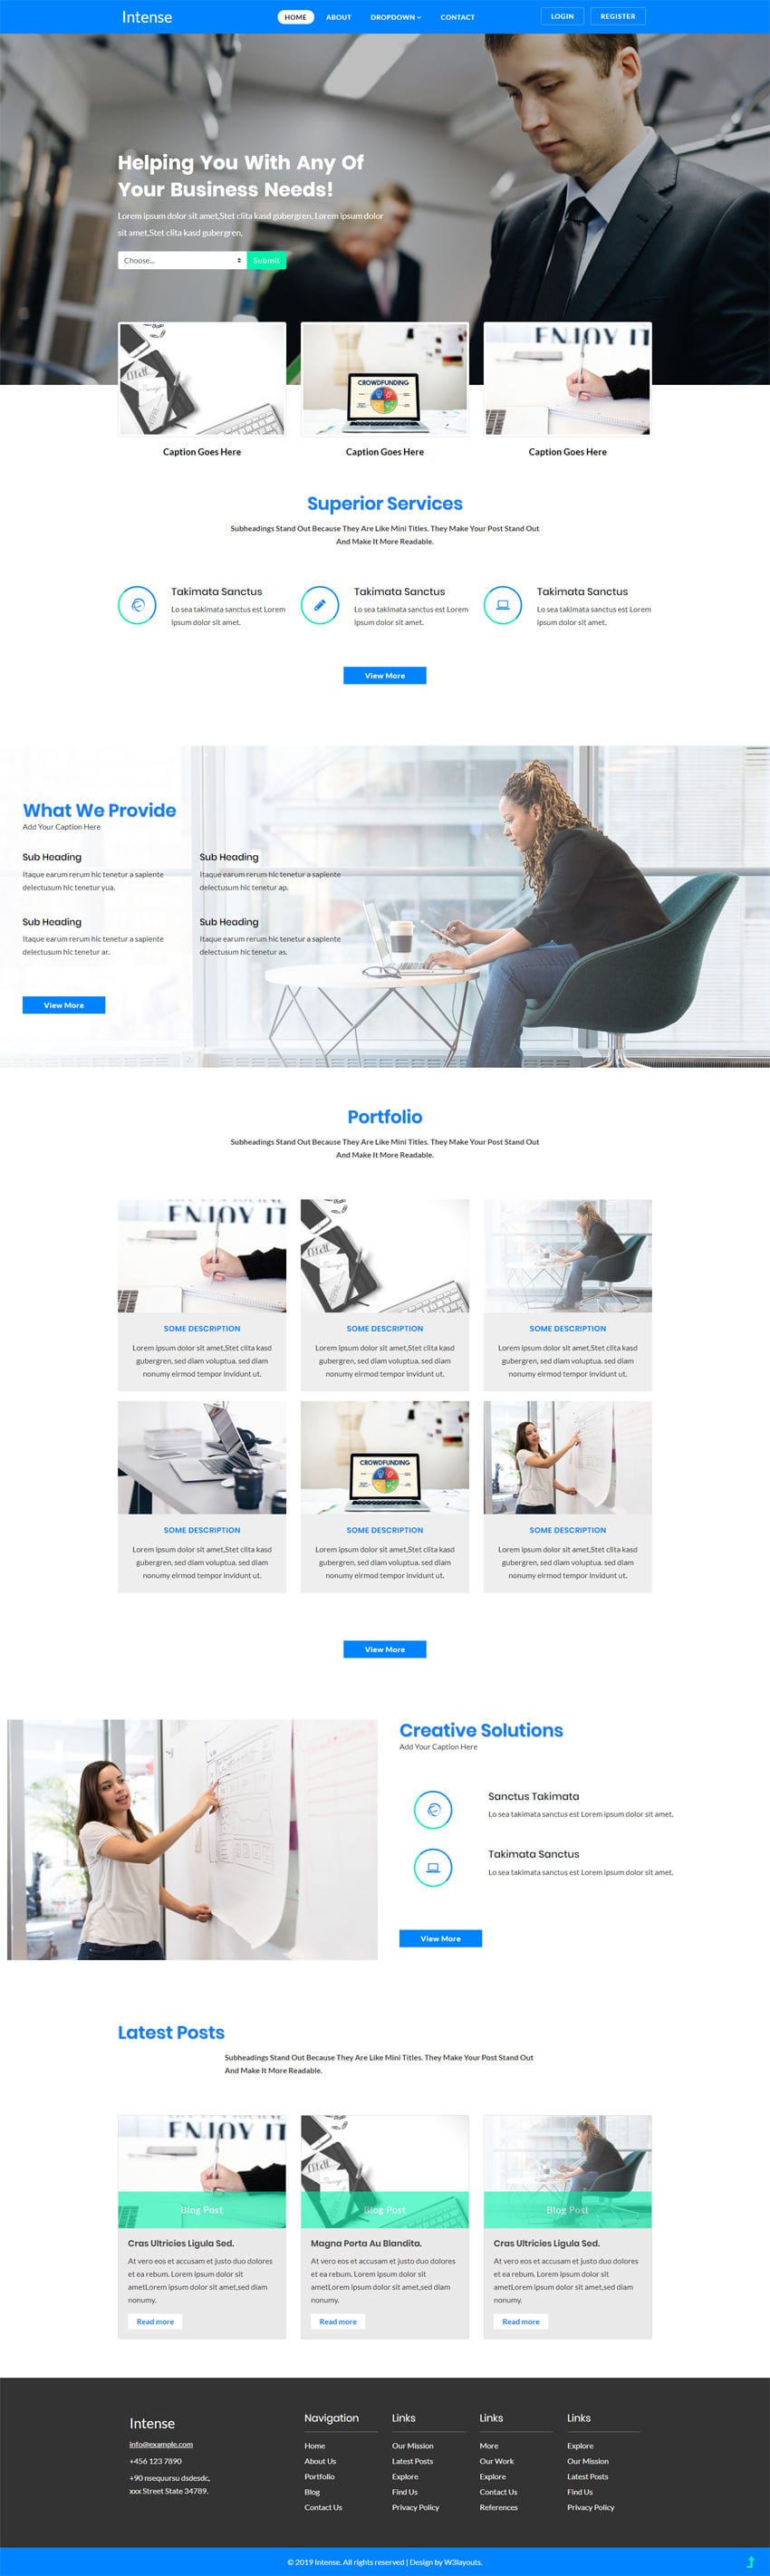 Intense - Business category Corporate website template for SMBs and Enterprises